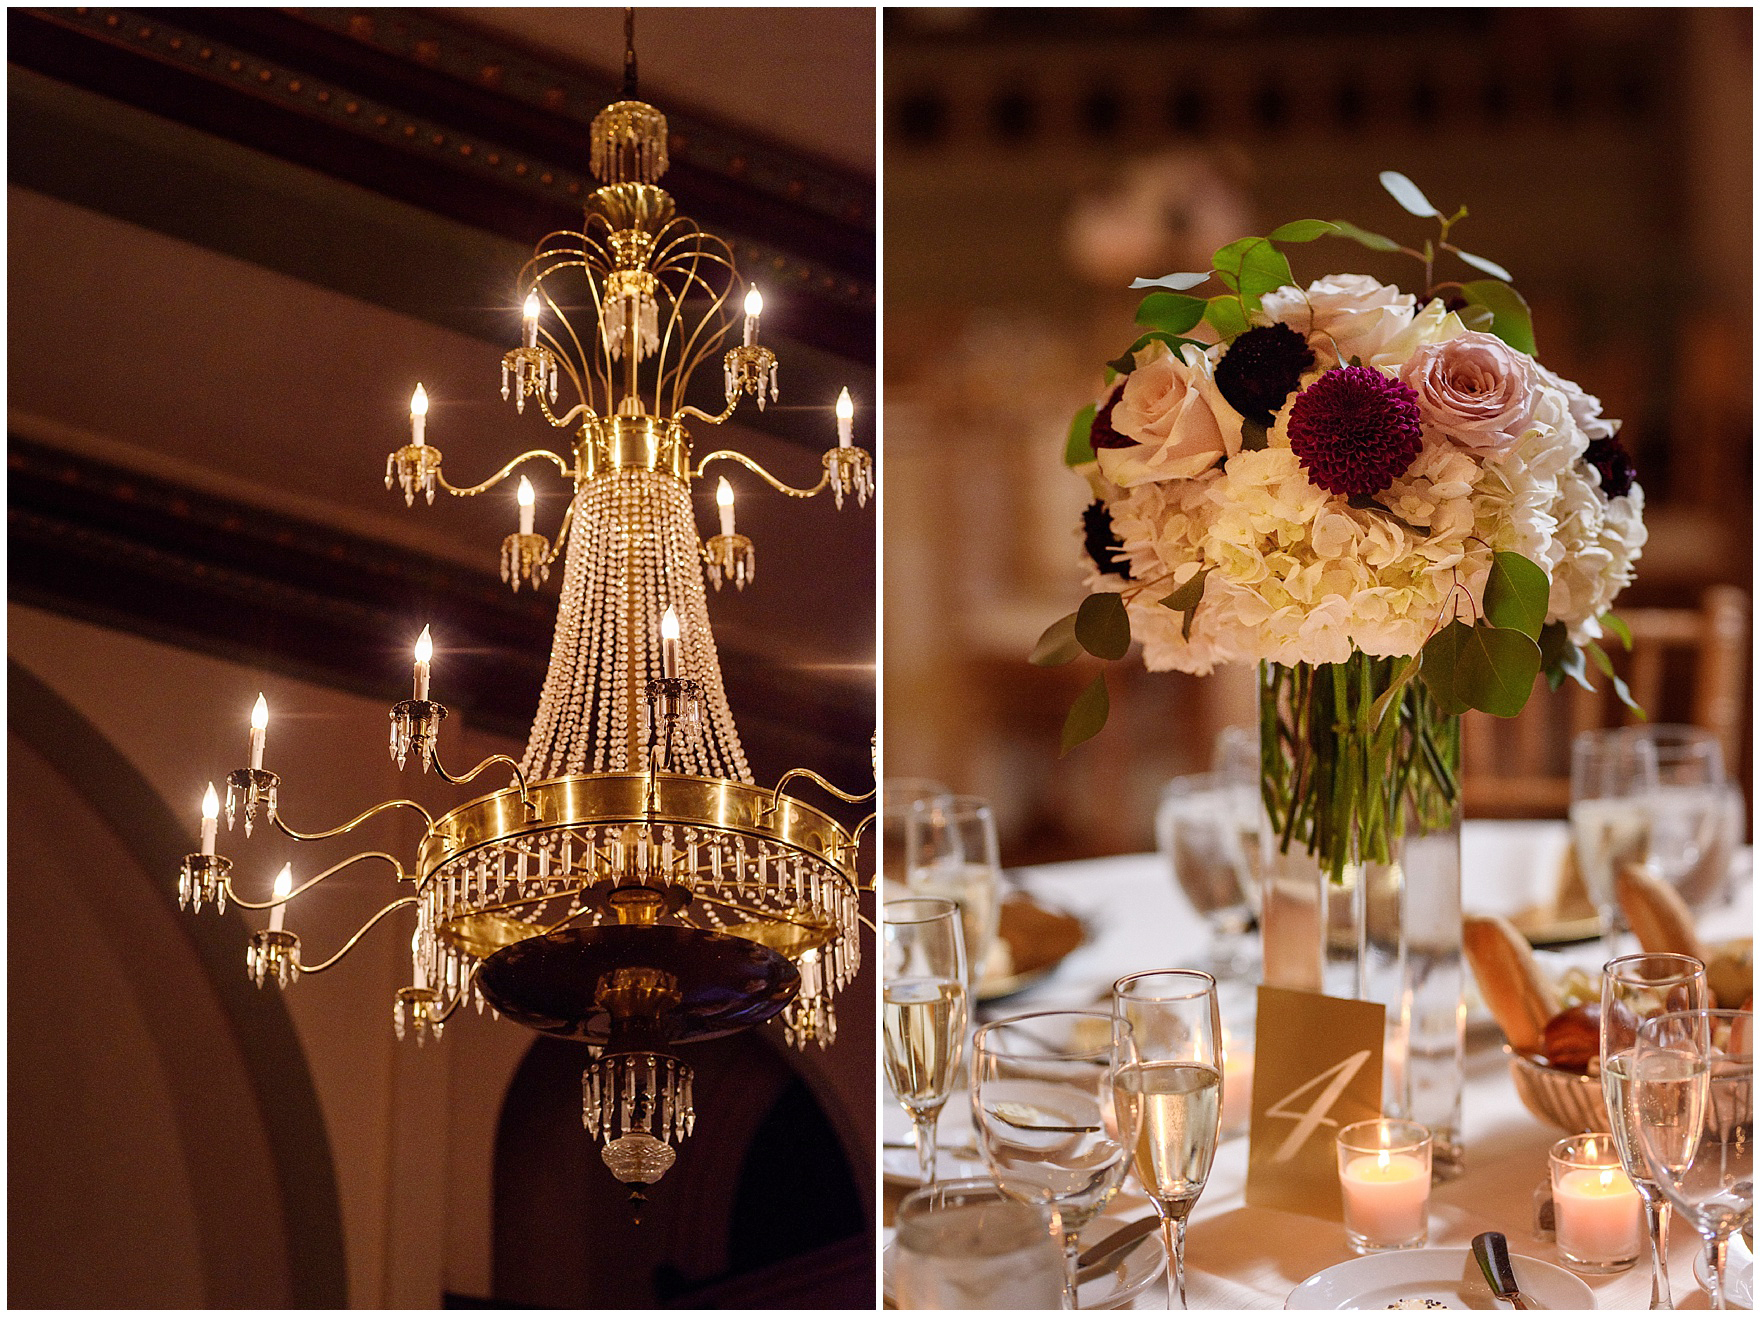 Crystal chandeliers and rose and hydrangea floral centerpieces during a St. Clement Germania Place Chicago wedding.